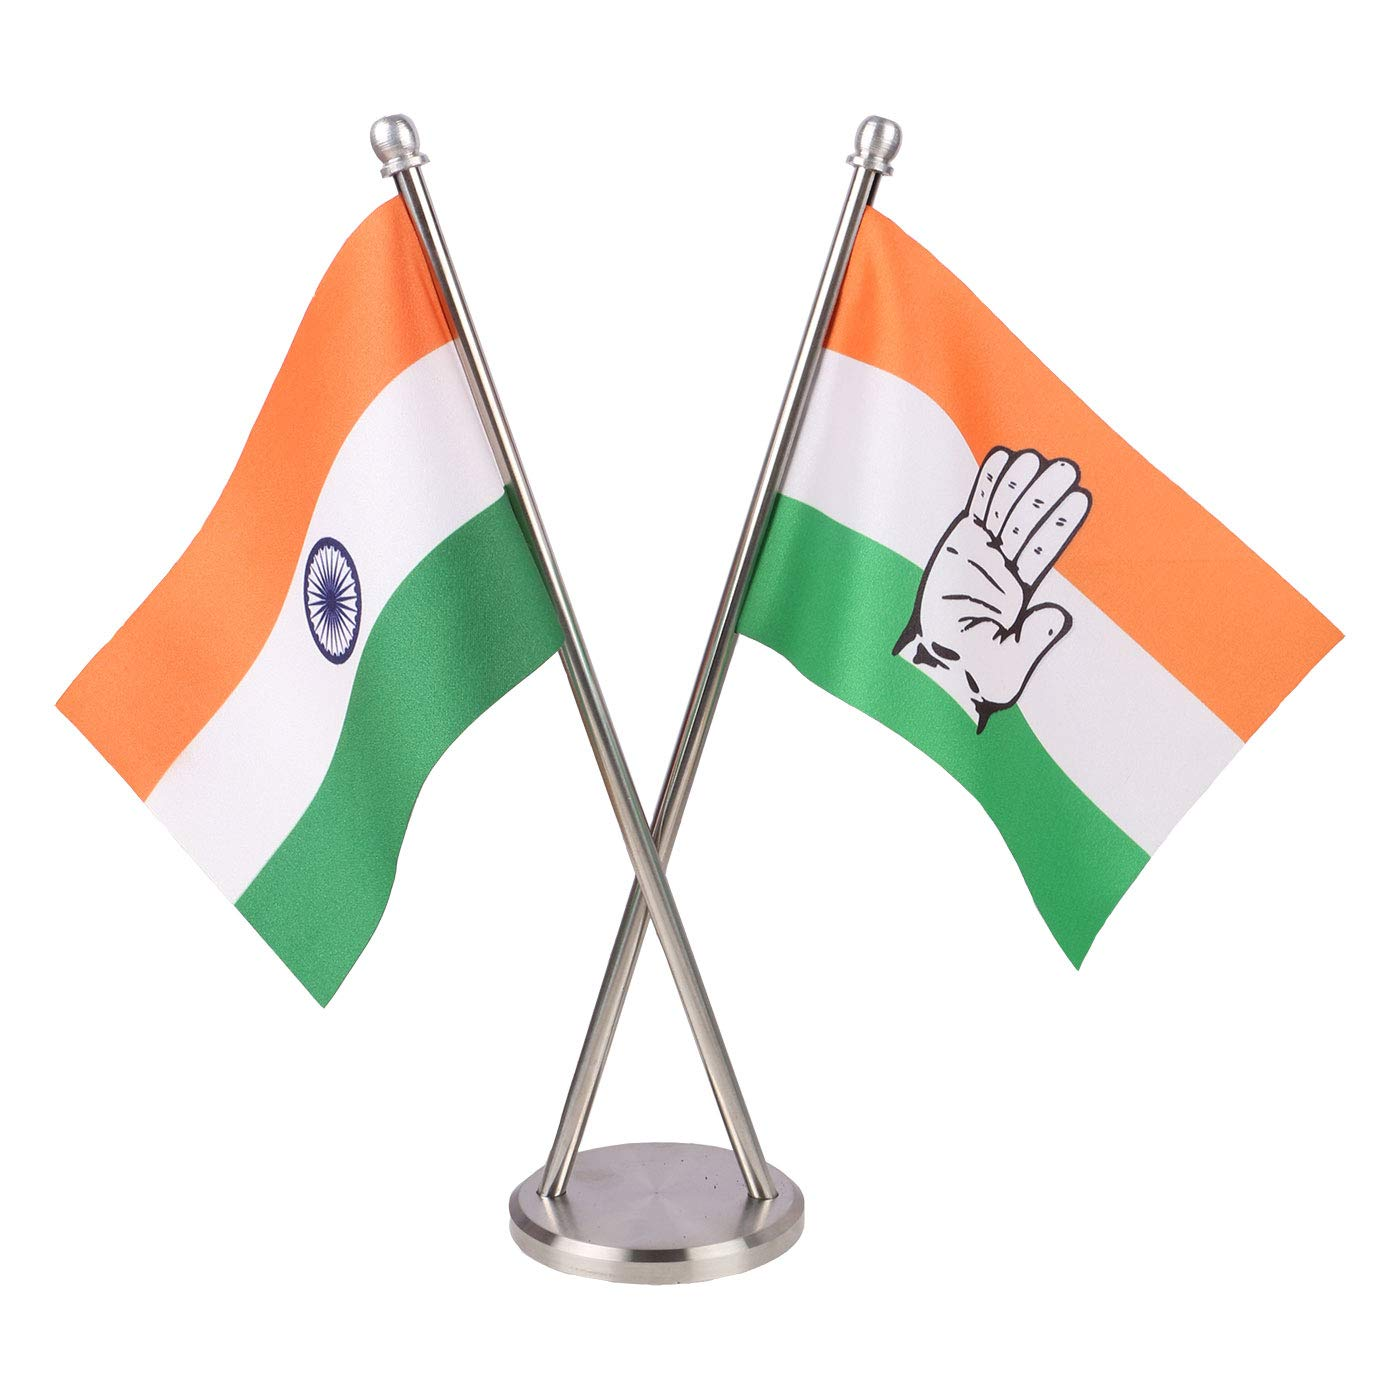 The Flag Shop India Indian National Congress Party Inc Miniature Criss Cross Table Flags With An Elegant Stainless Steel Base Amazon In Home Kitchen